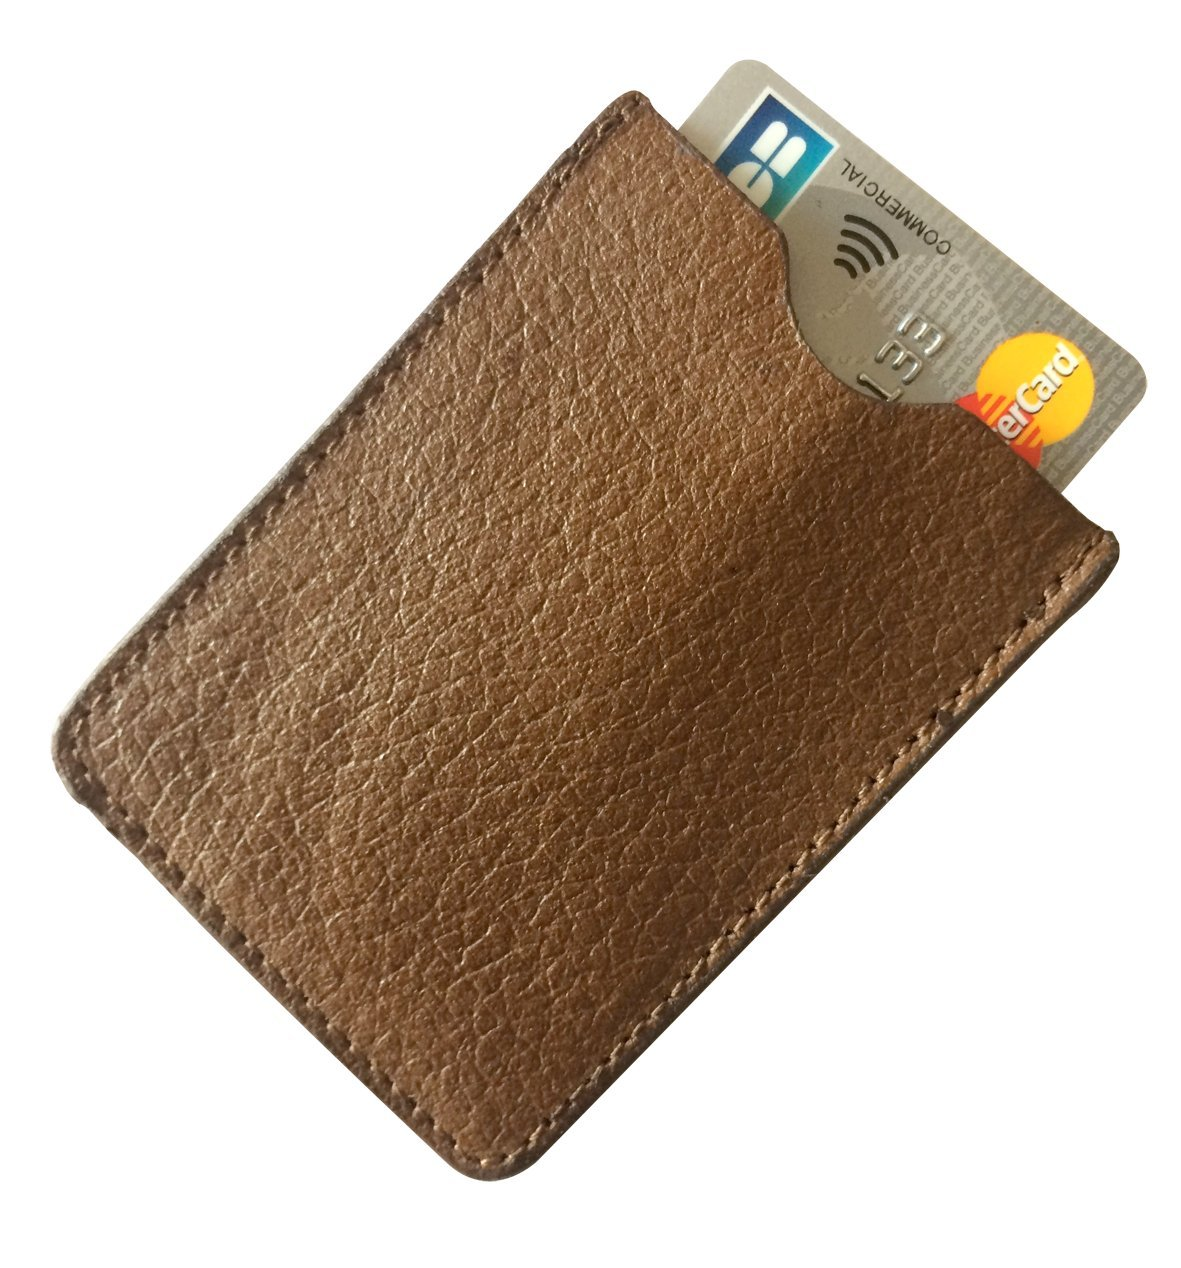 ETUI CUIR MARRON CARTE BANCAIRE SANS CONTACT